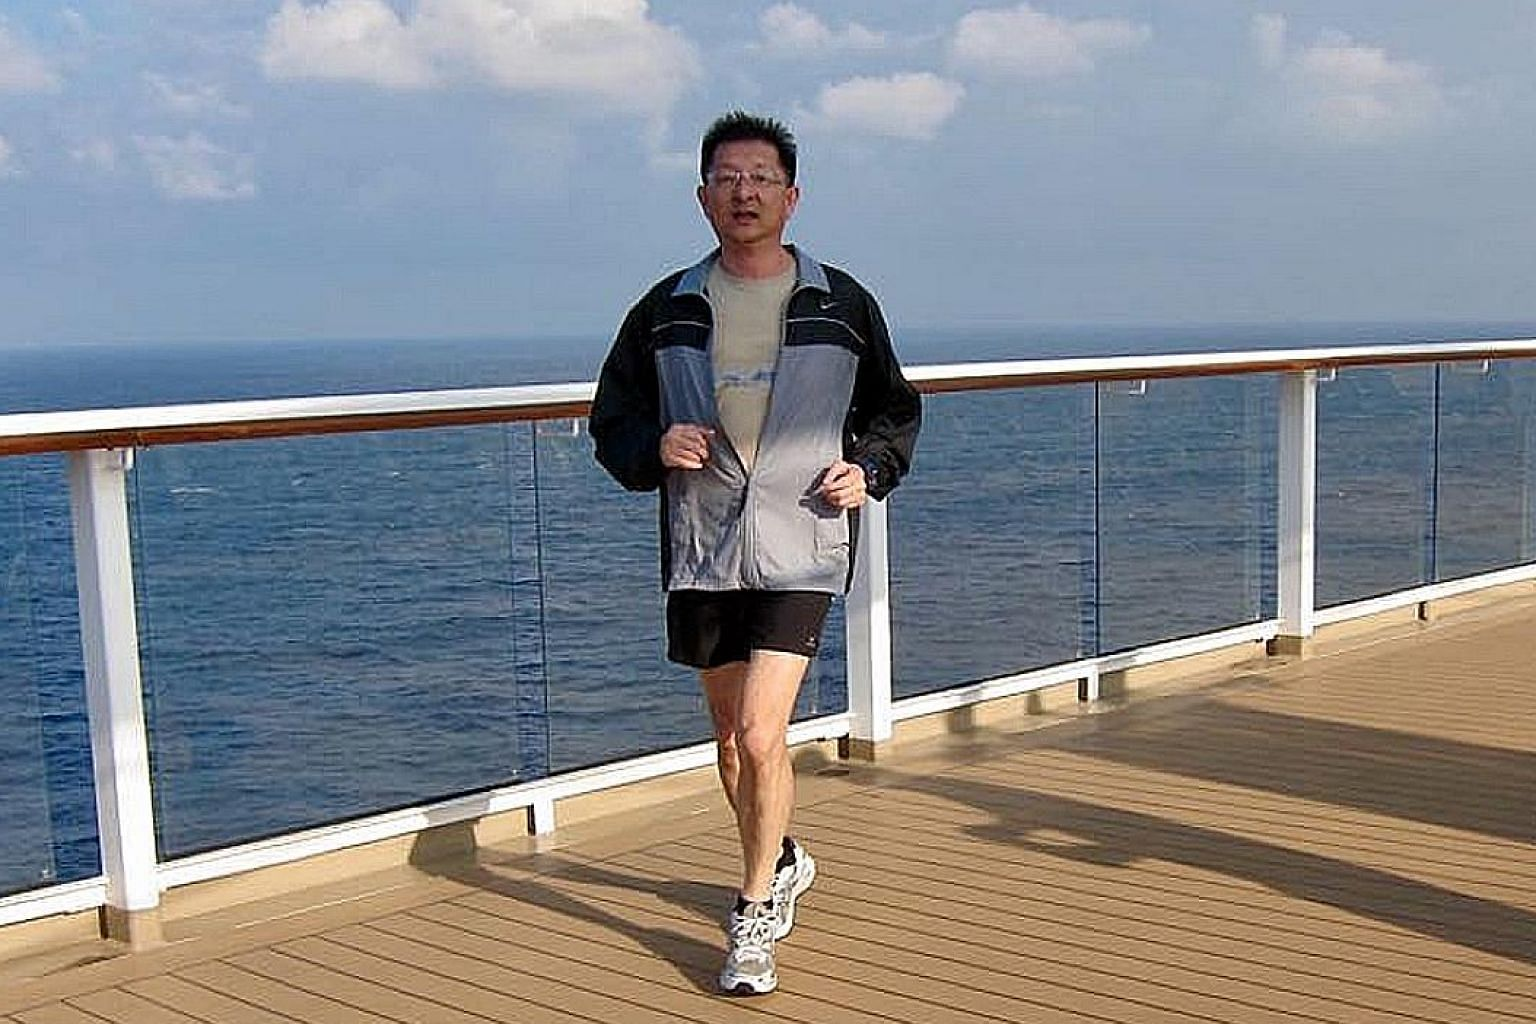 Mr Freddie Lim took part in full marathons during his younger years. But he preferred to run just 10km races of late.